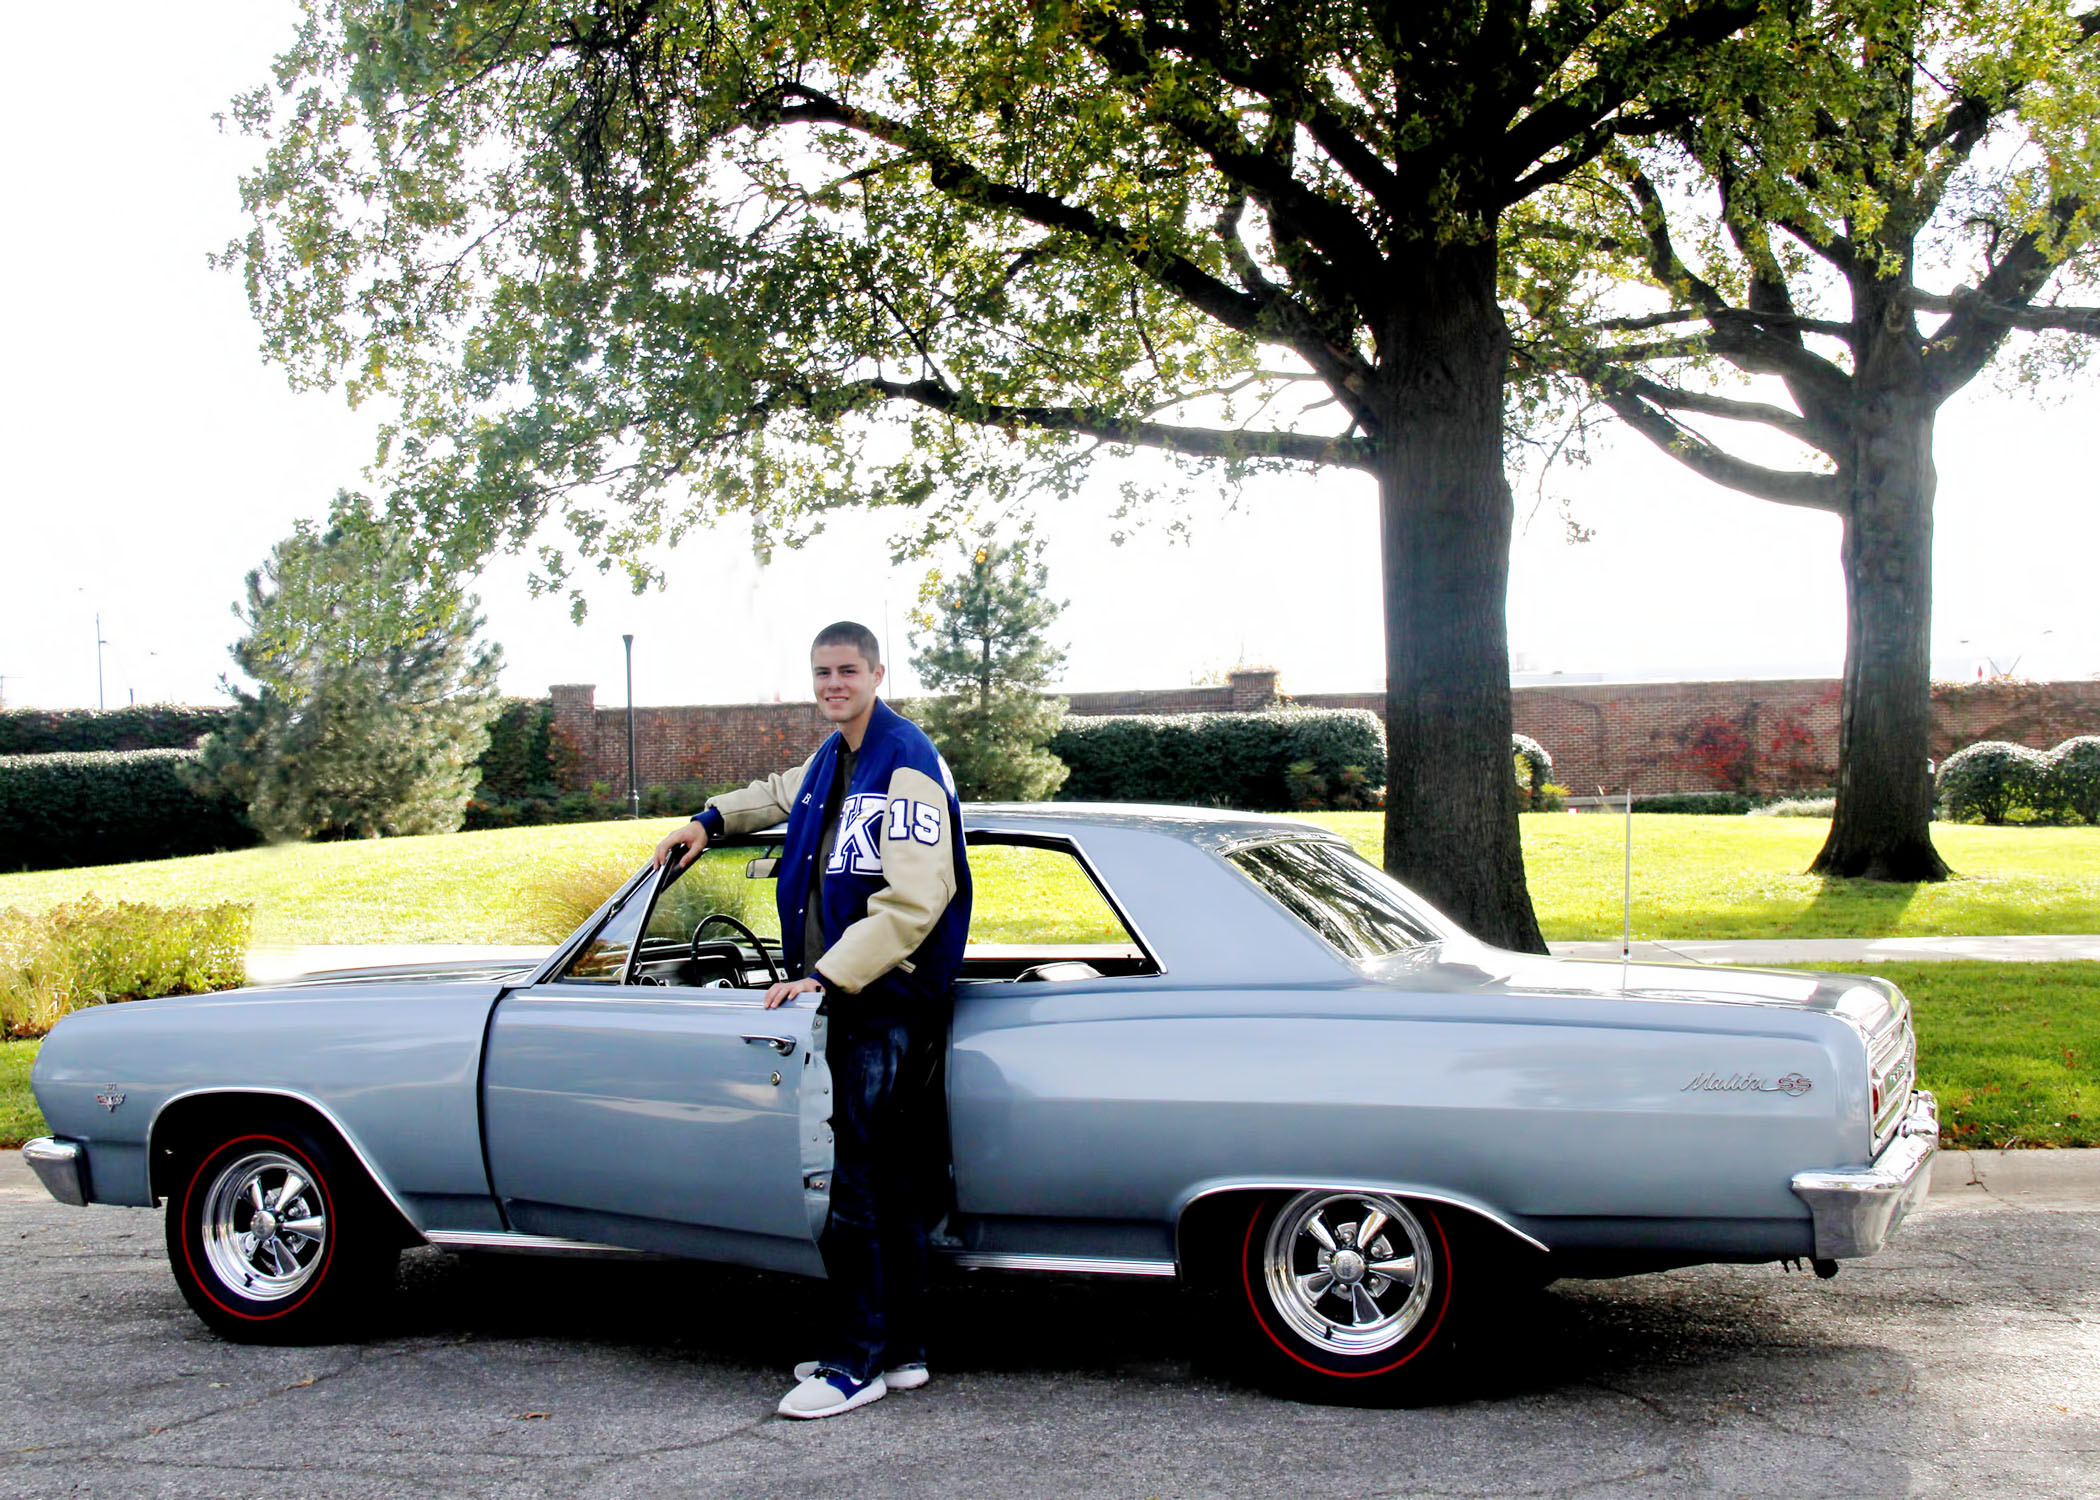 BRUCE_15_FULL_LENGTH_FIGURE_WITH_FULL_VIEW_OF_CHEVY_002